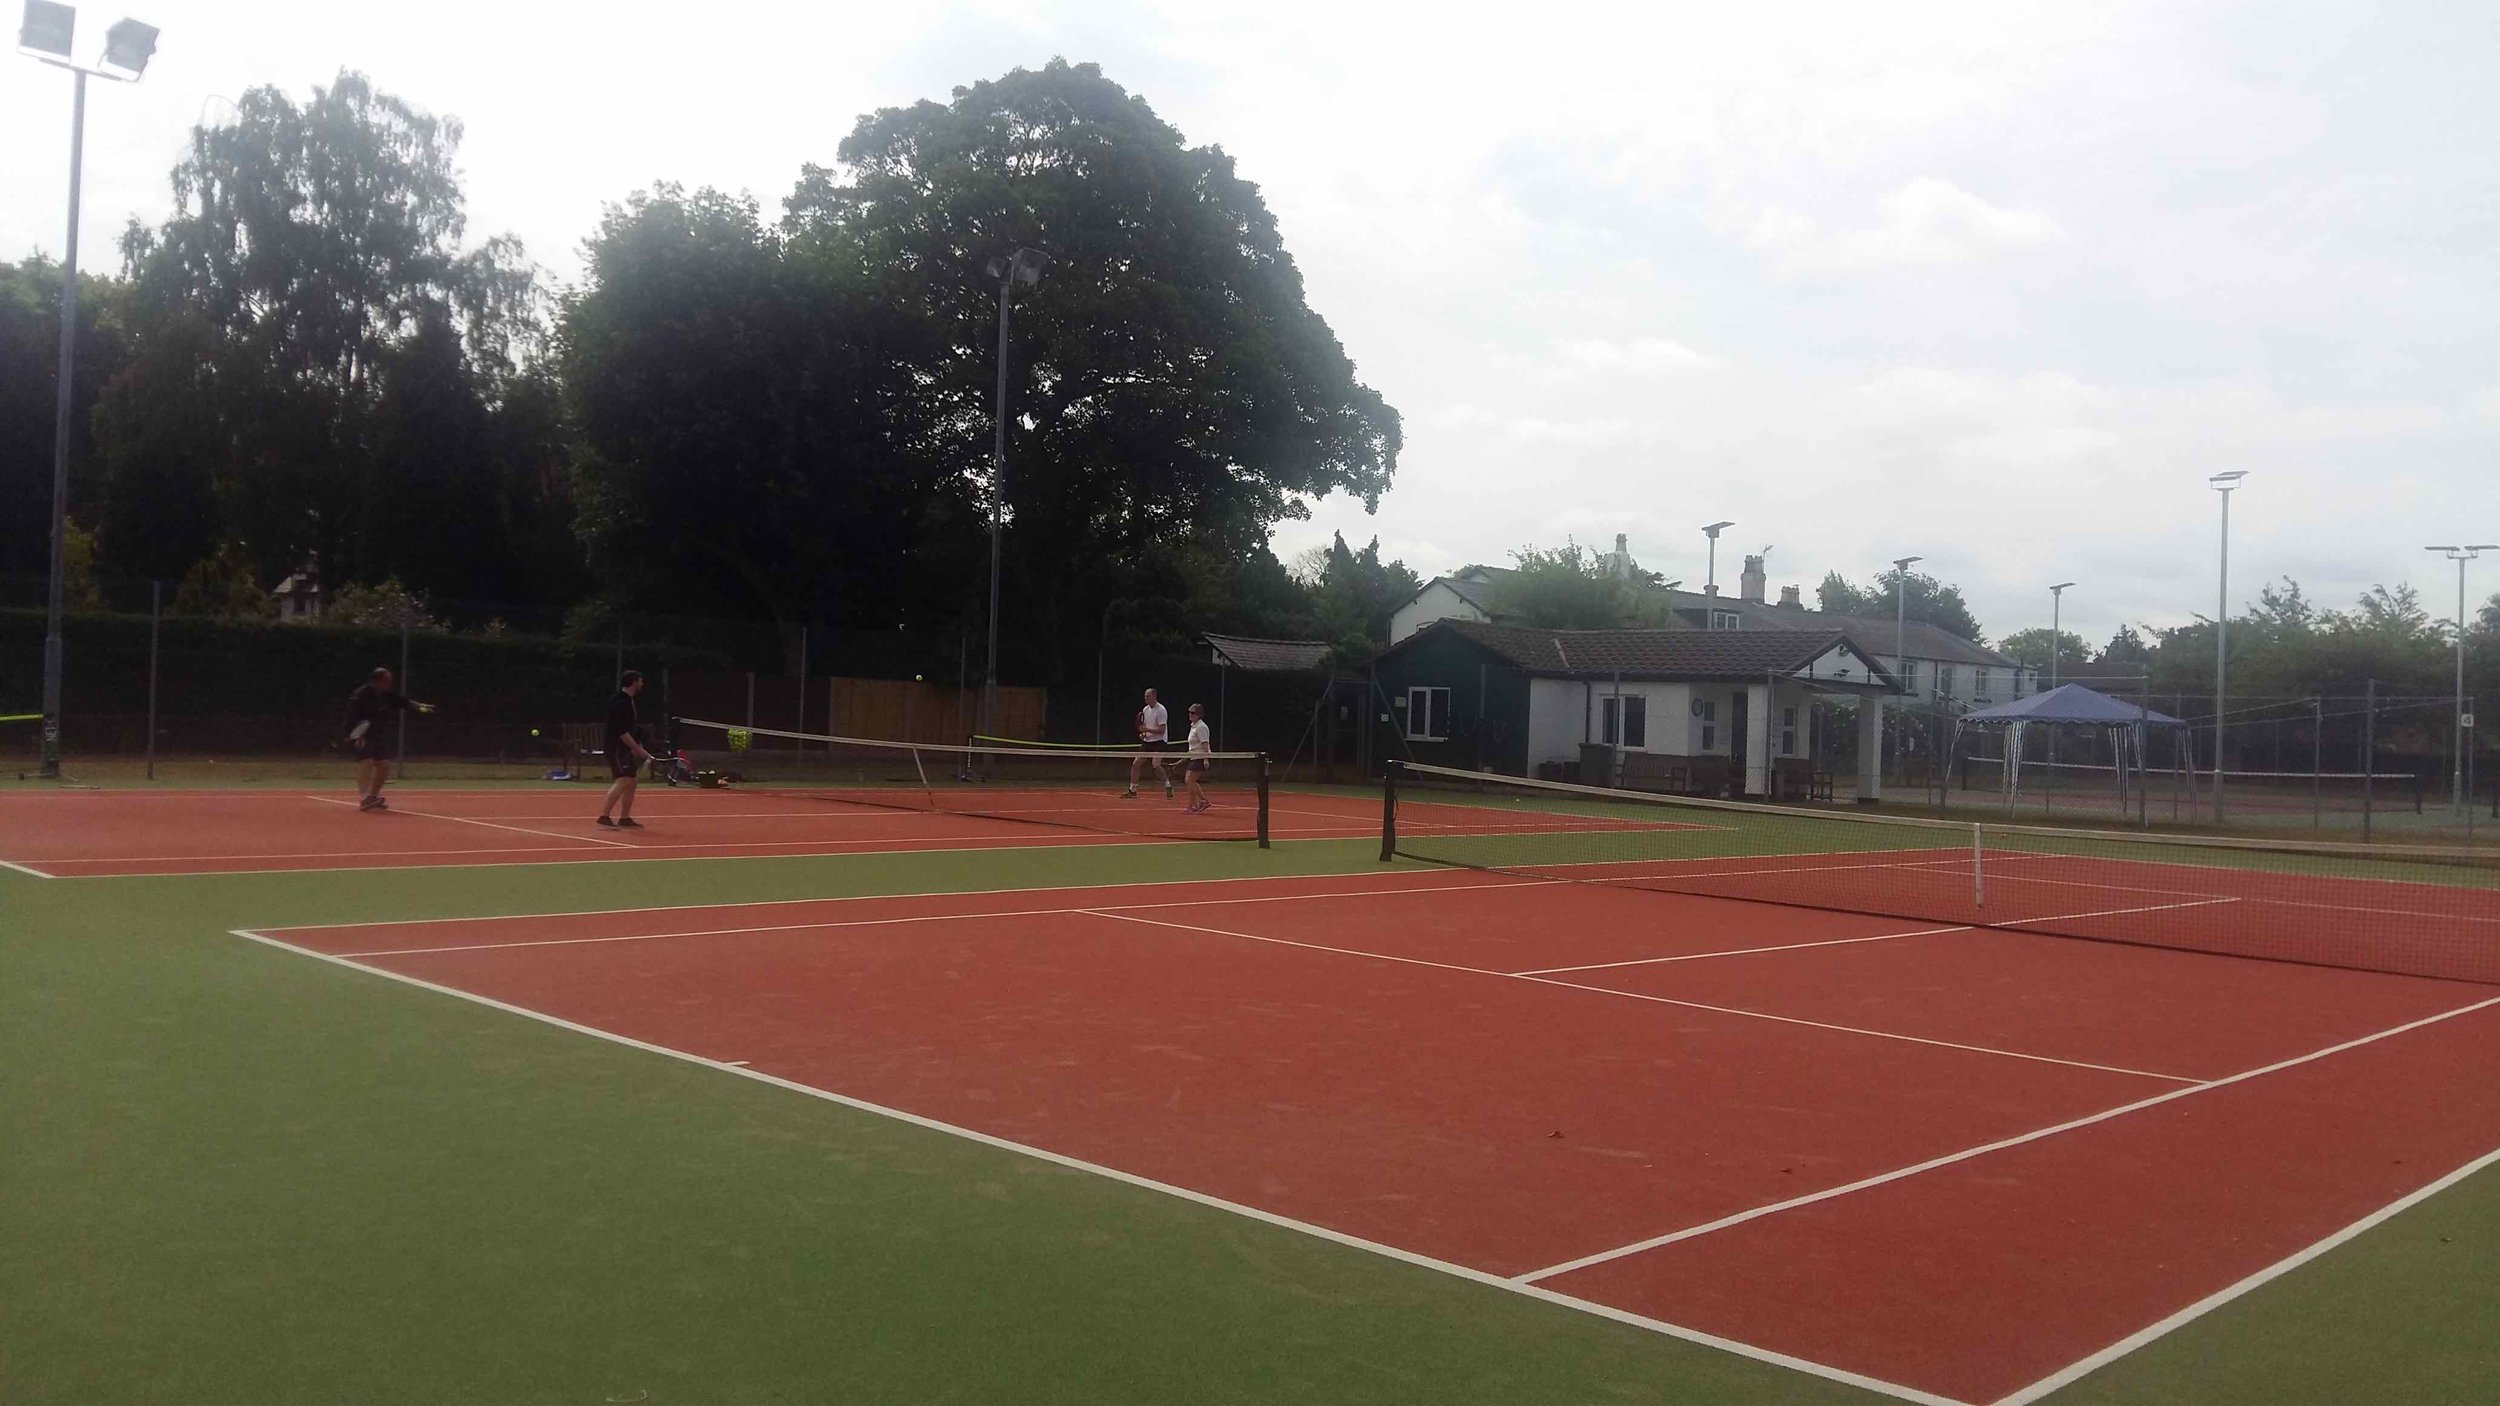 People playing tennis at the Club